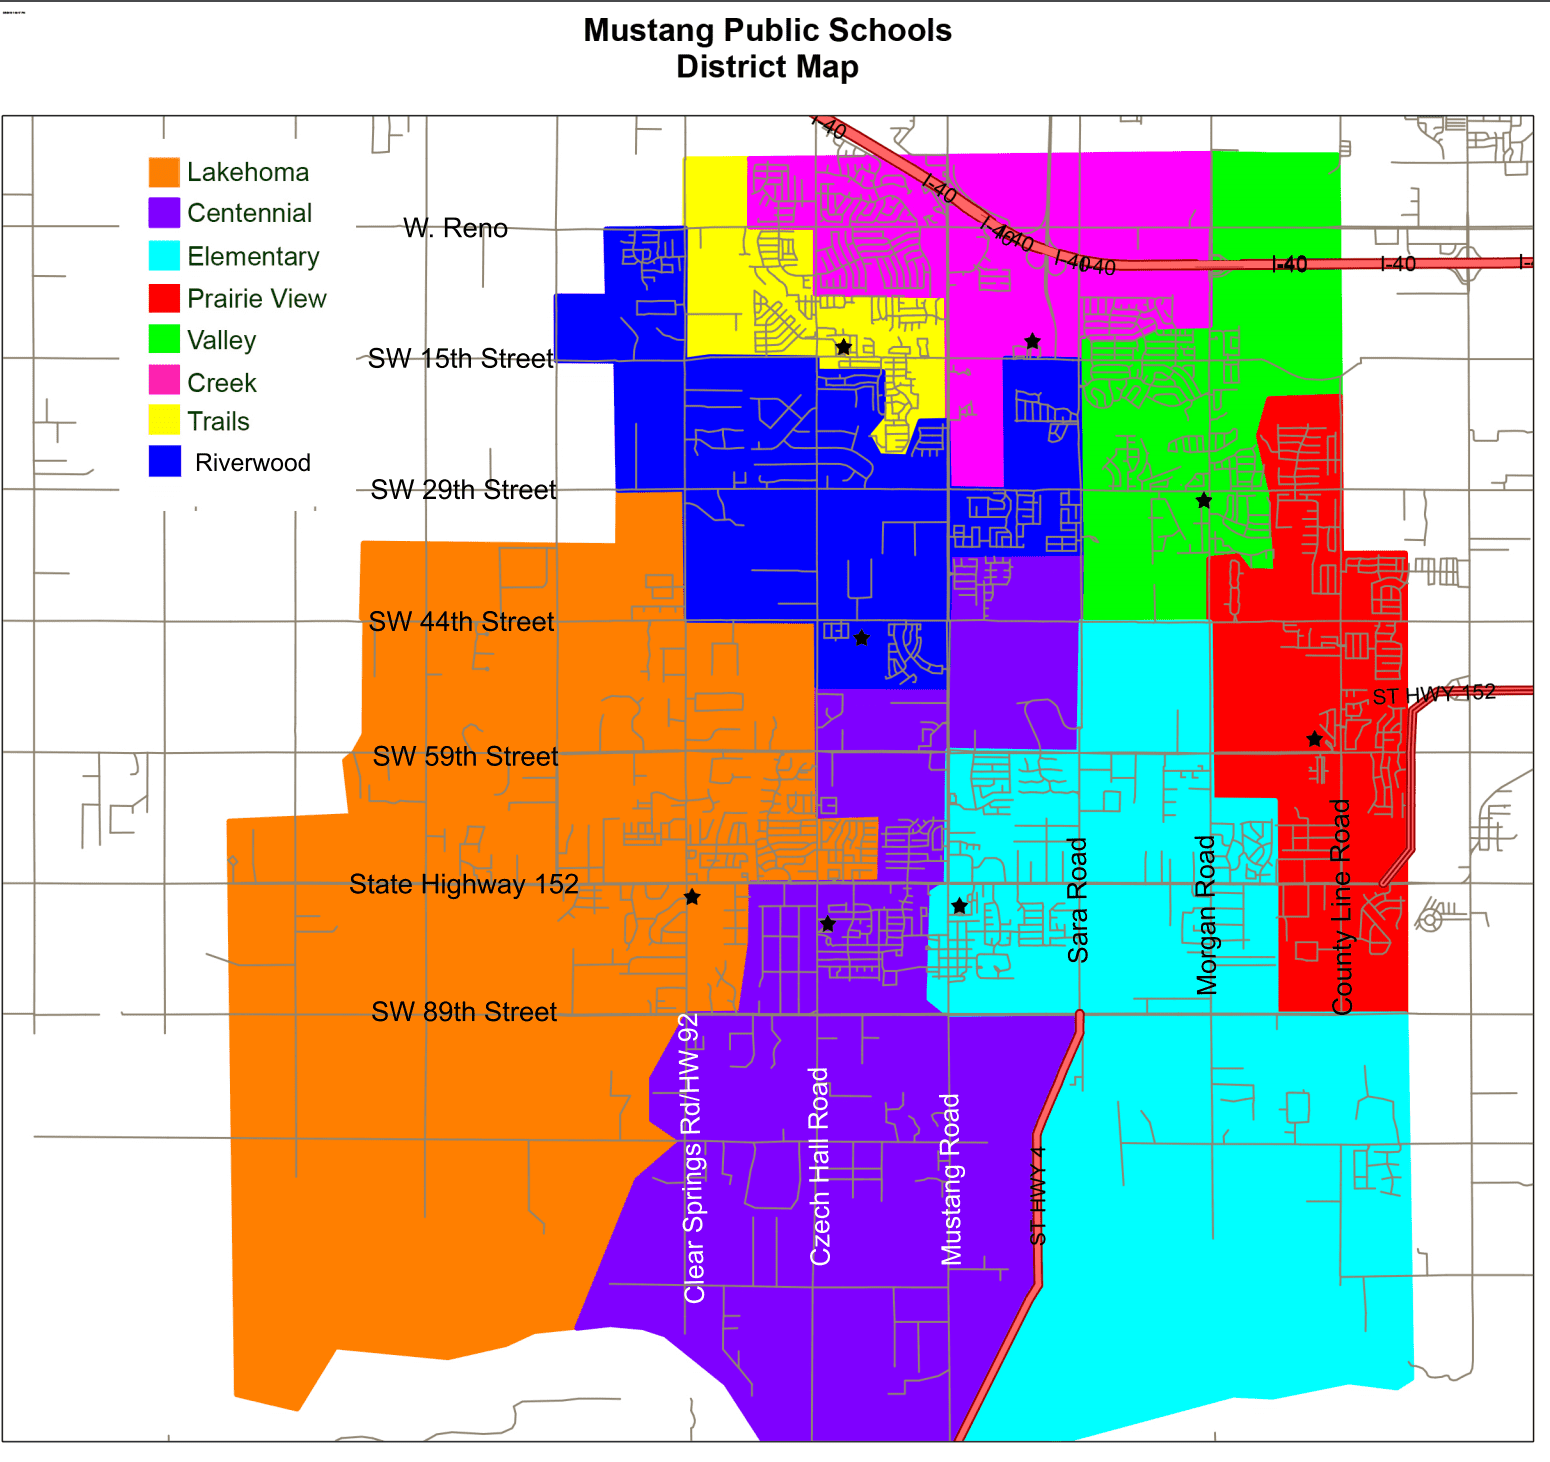 MUSTANG OK District Map Mustang Public Schools